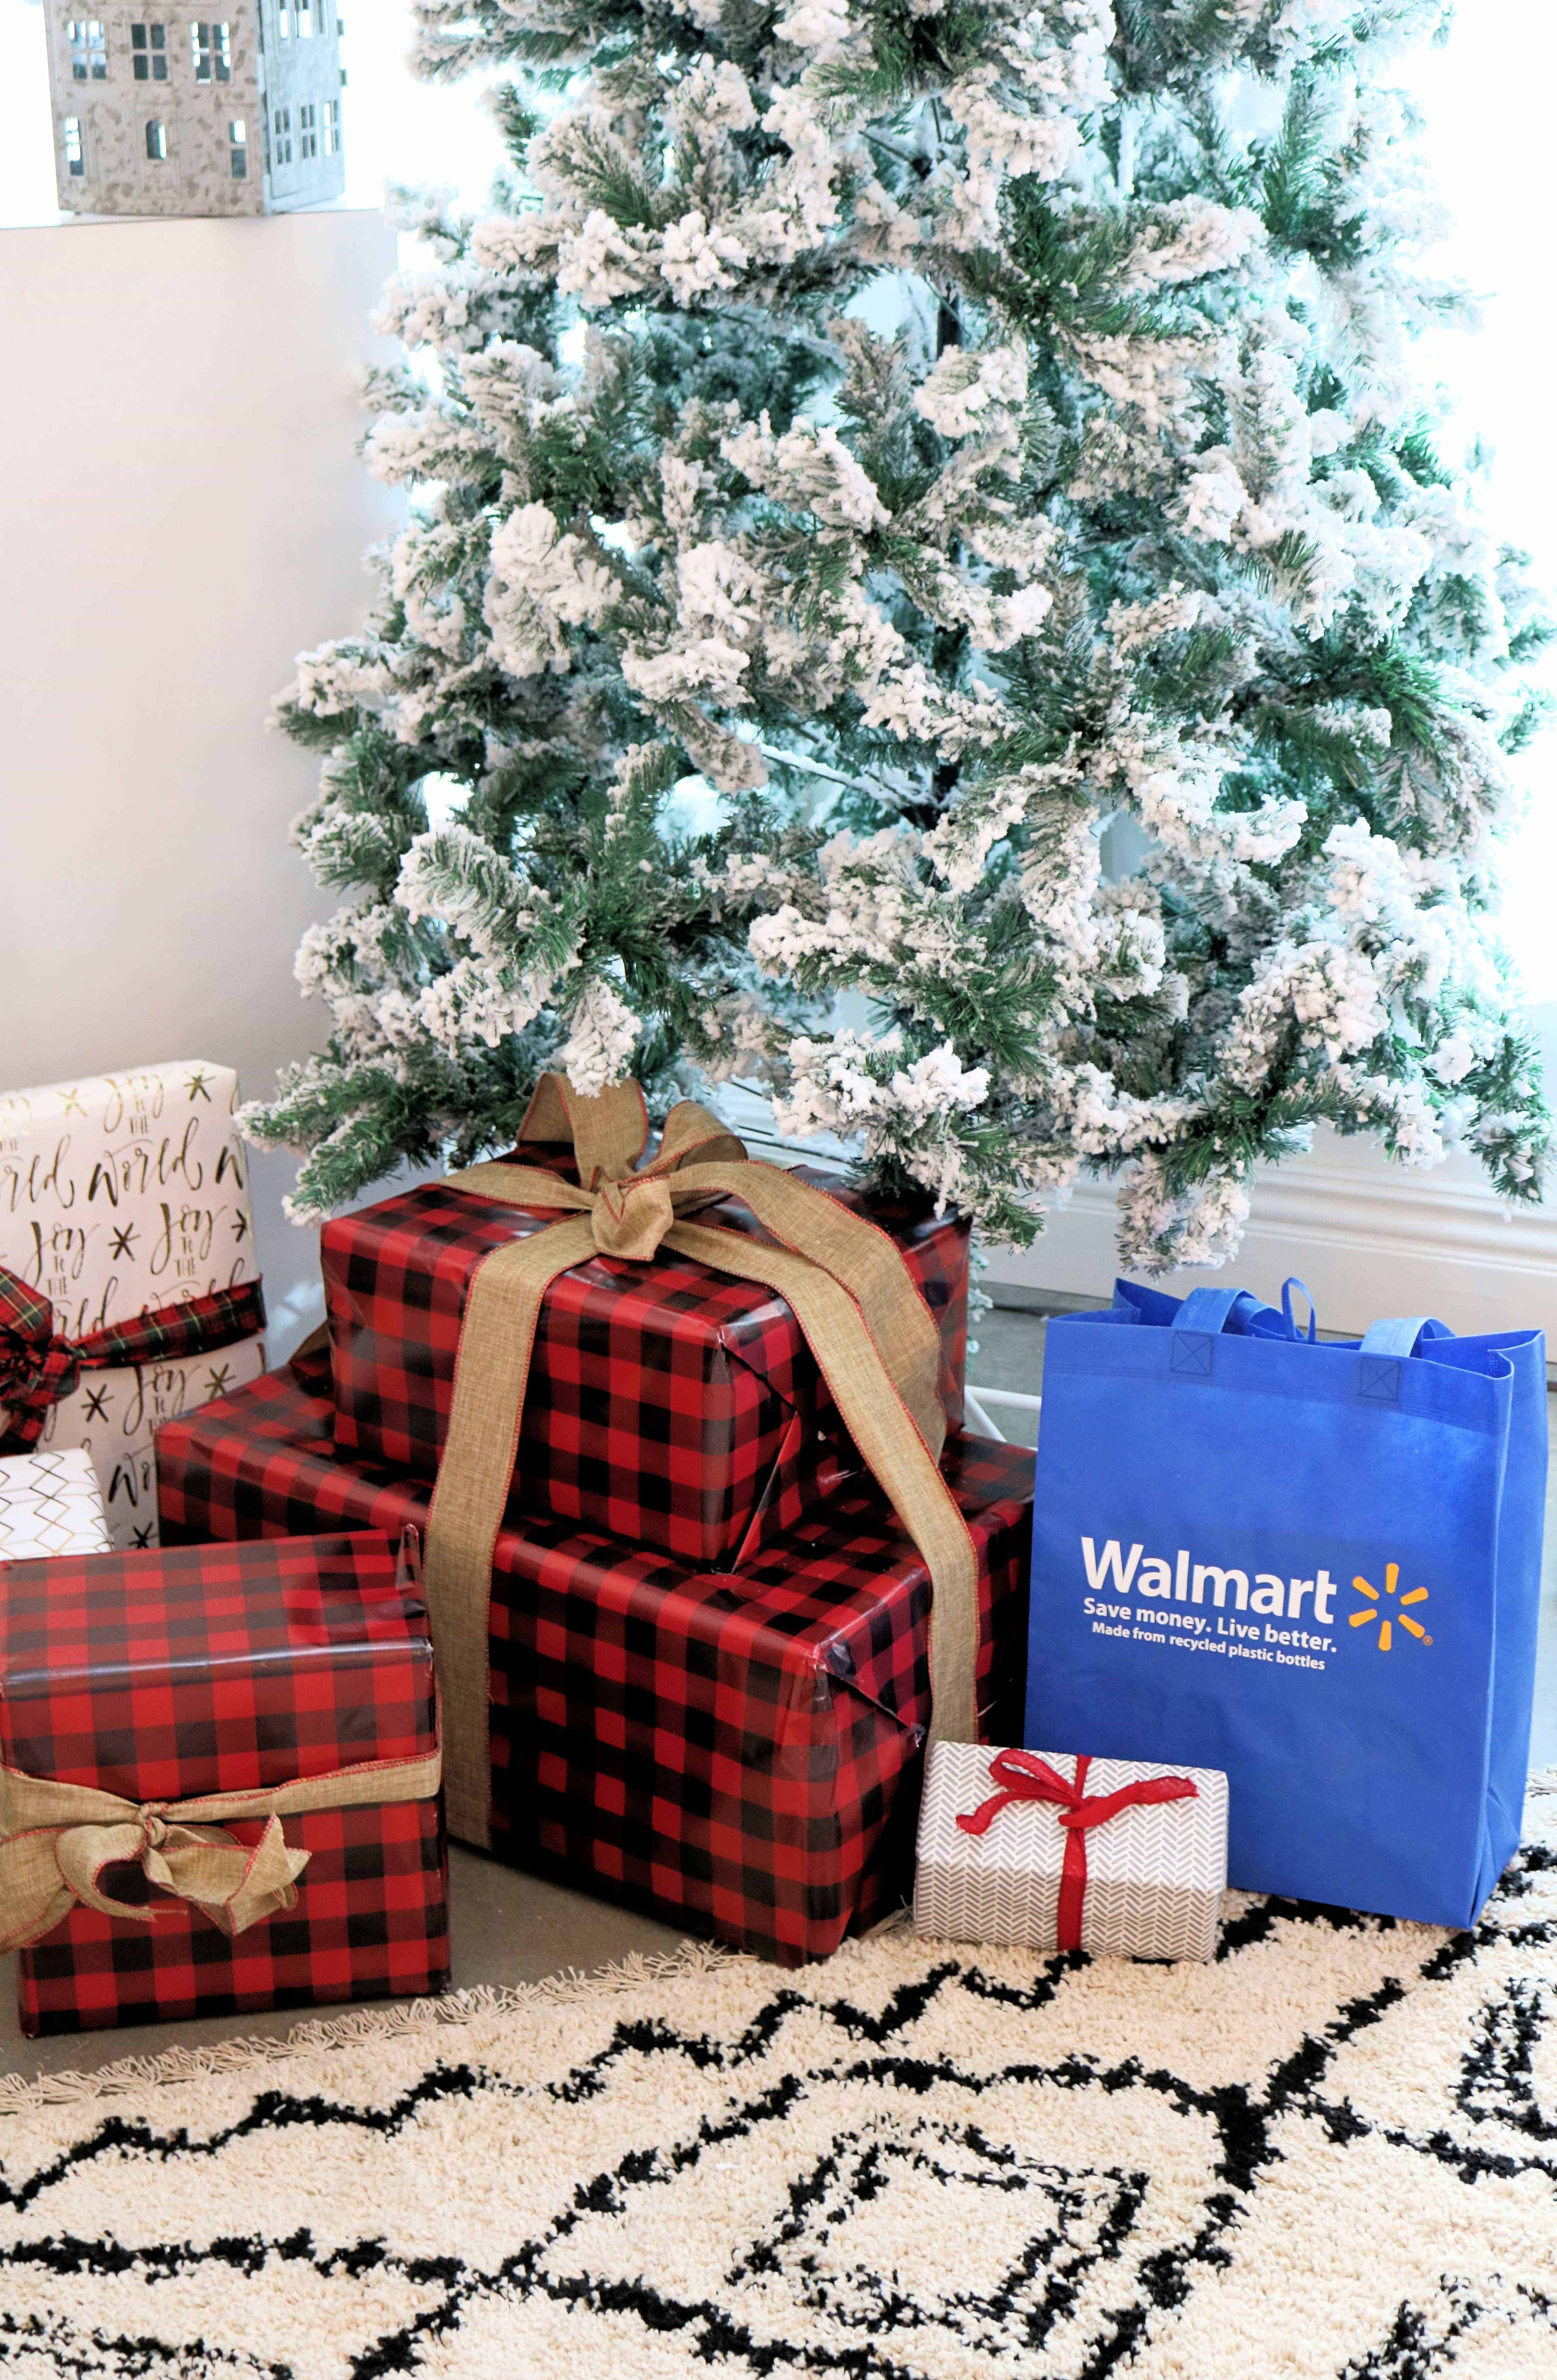 Looking for great black friday deals? This roundup of the 25 Hottest Walmart Black Friday Deals For the Whole Family will help you find the perfect Christmas gift this year for everyone on your list. This post has it all including amazing gifts for her, gifts for him, and gifts for the kids! #sponsored #blackfriday #WalmartSKM #walmartblackfriday #blackfriday2018 #lightupblackfriday #christmasgifts #giftsforthefamily